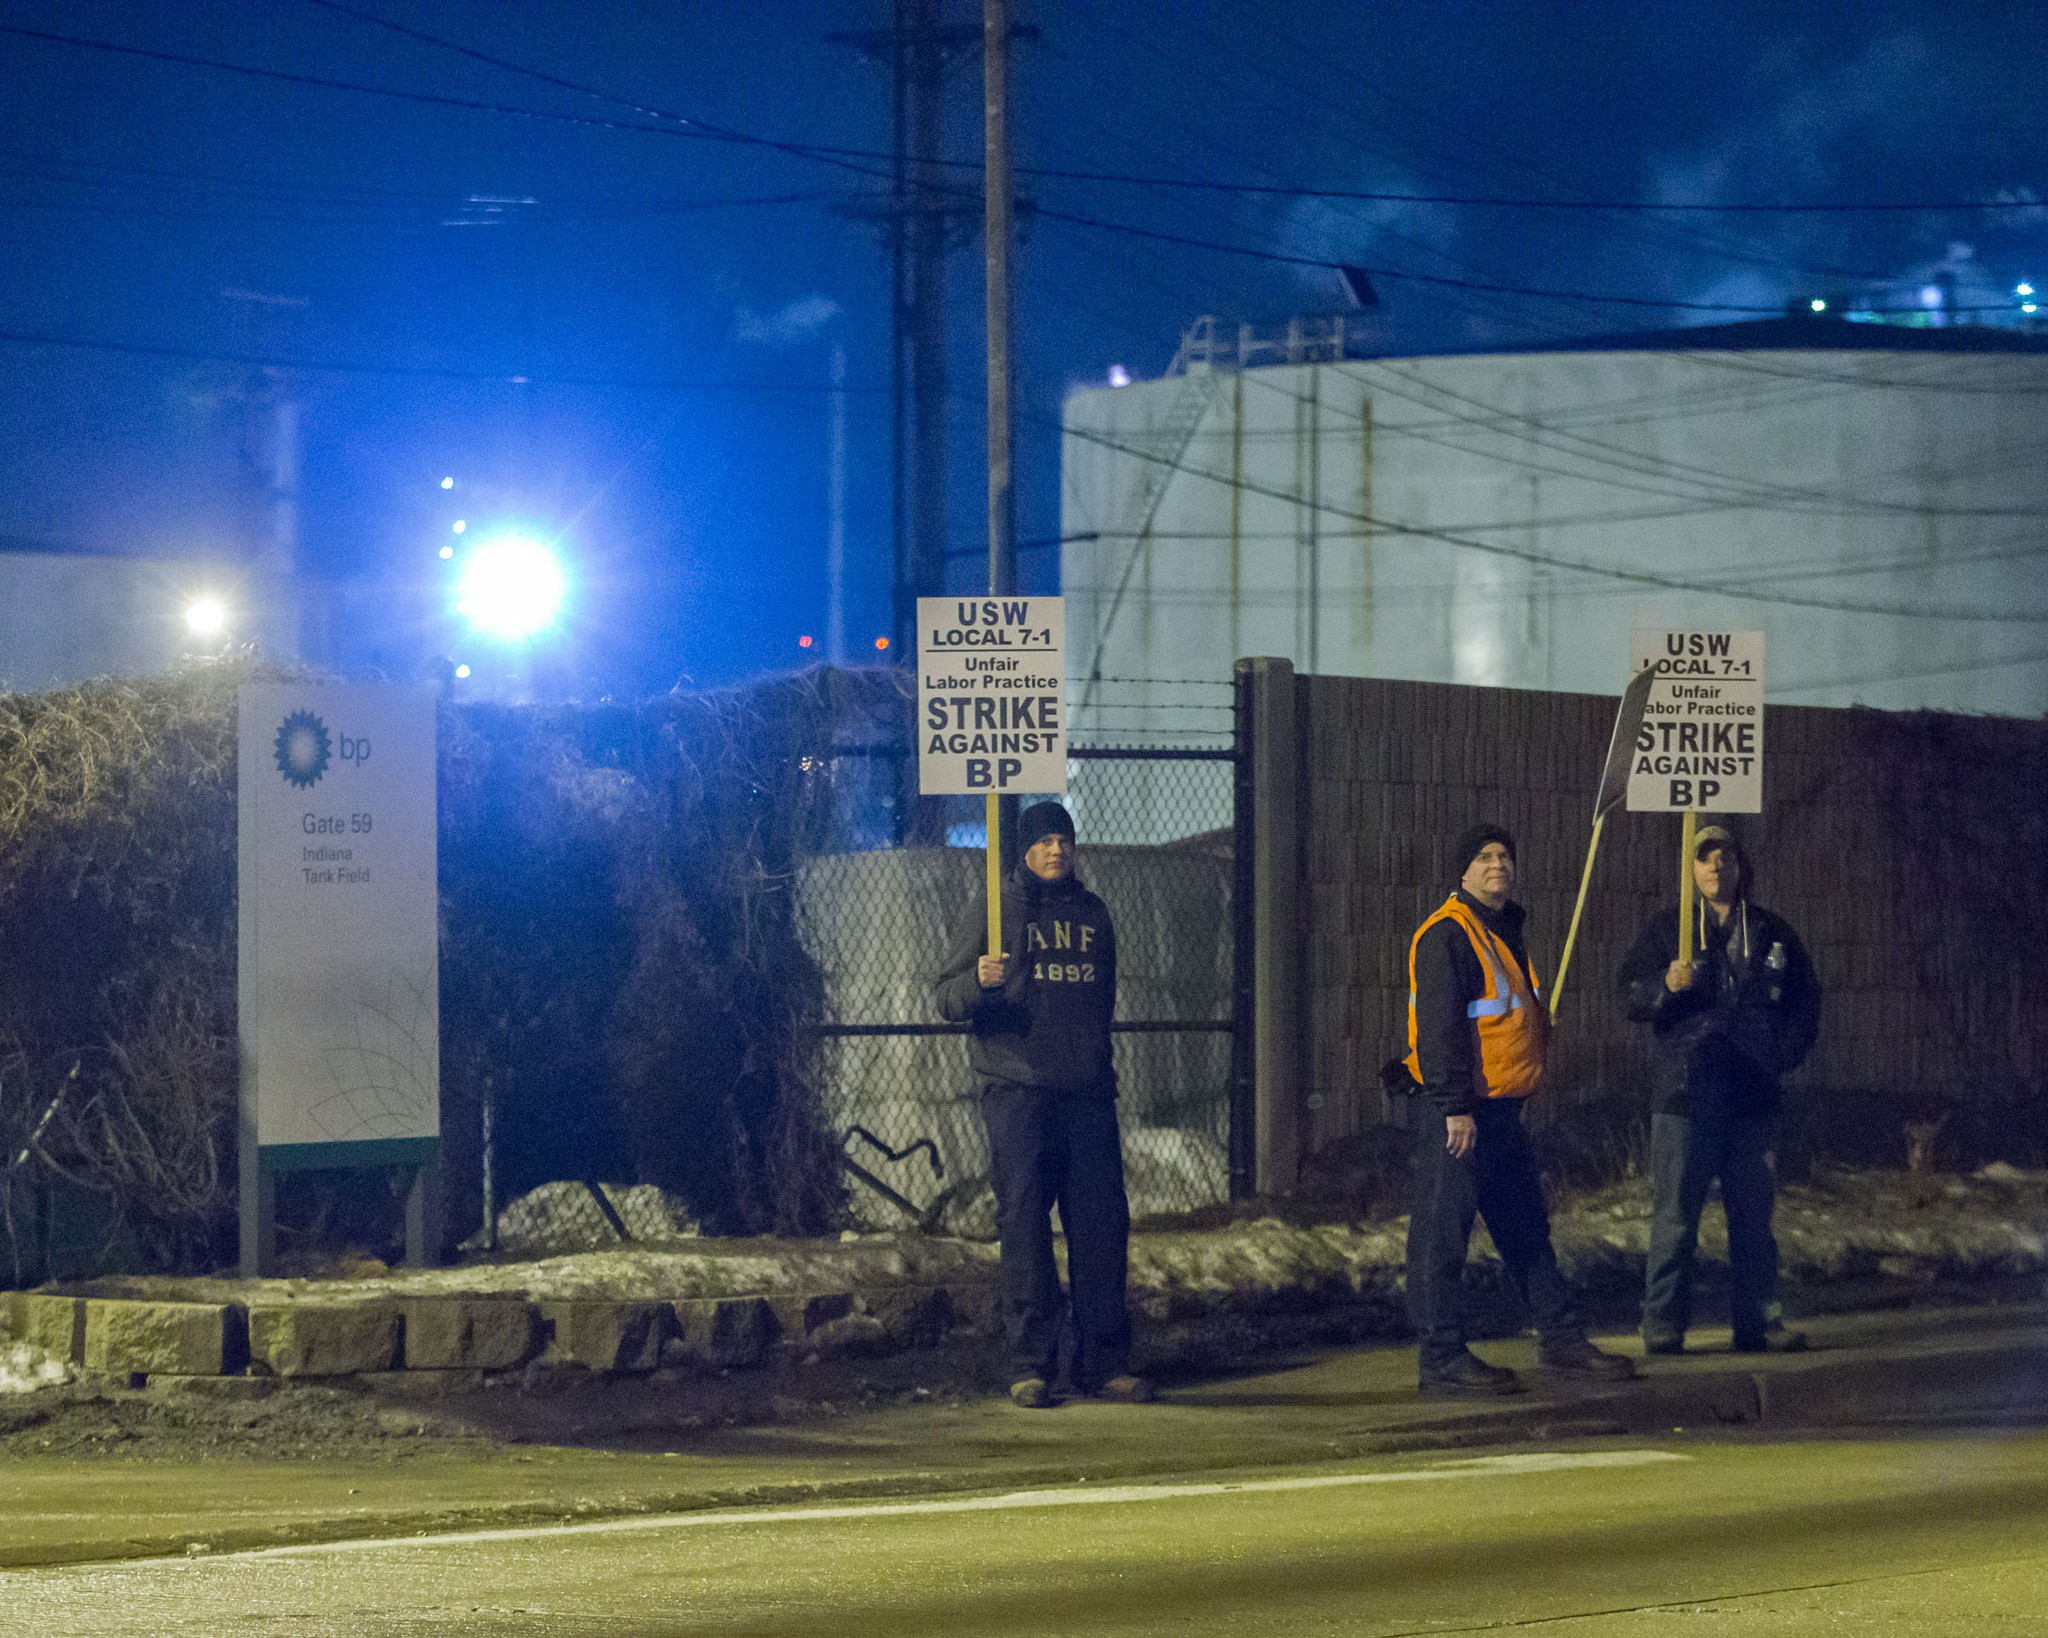 Workers at Whiting, Indiana, oil refinery join nationwide strike - ...